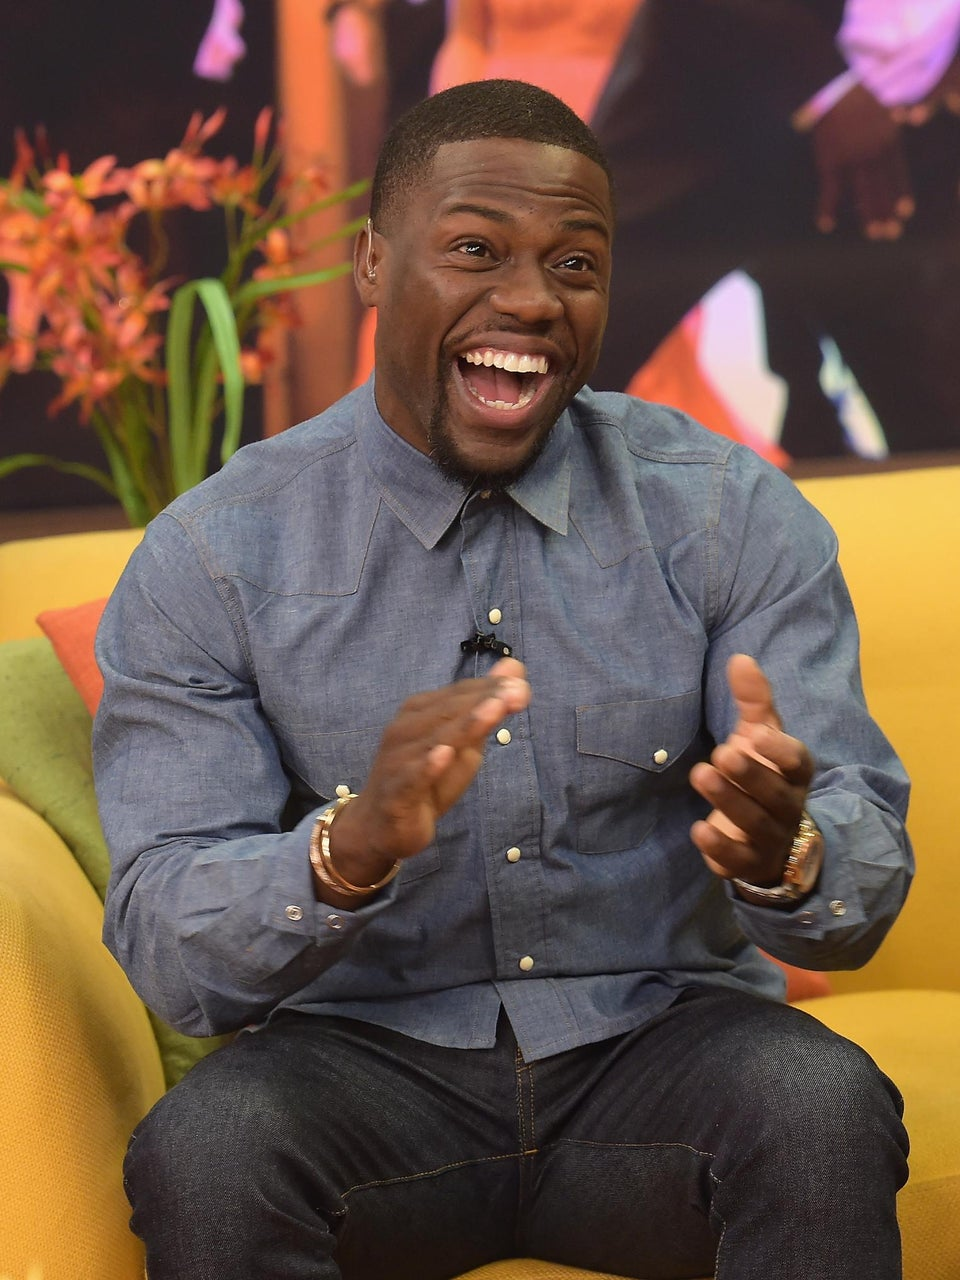 The State of California Announces Kevin Hart Day